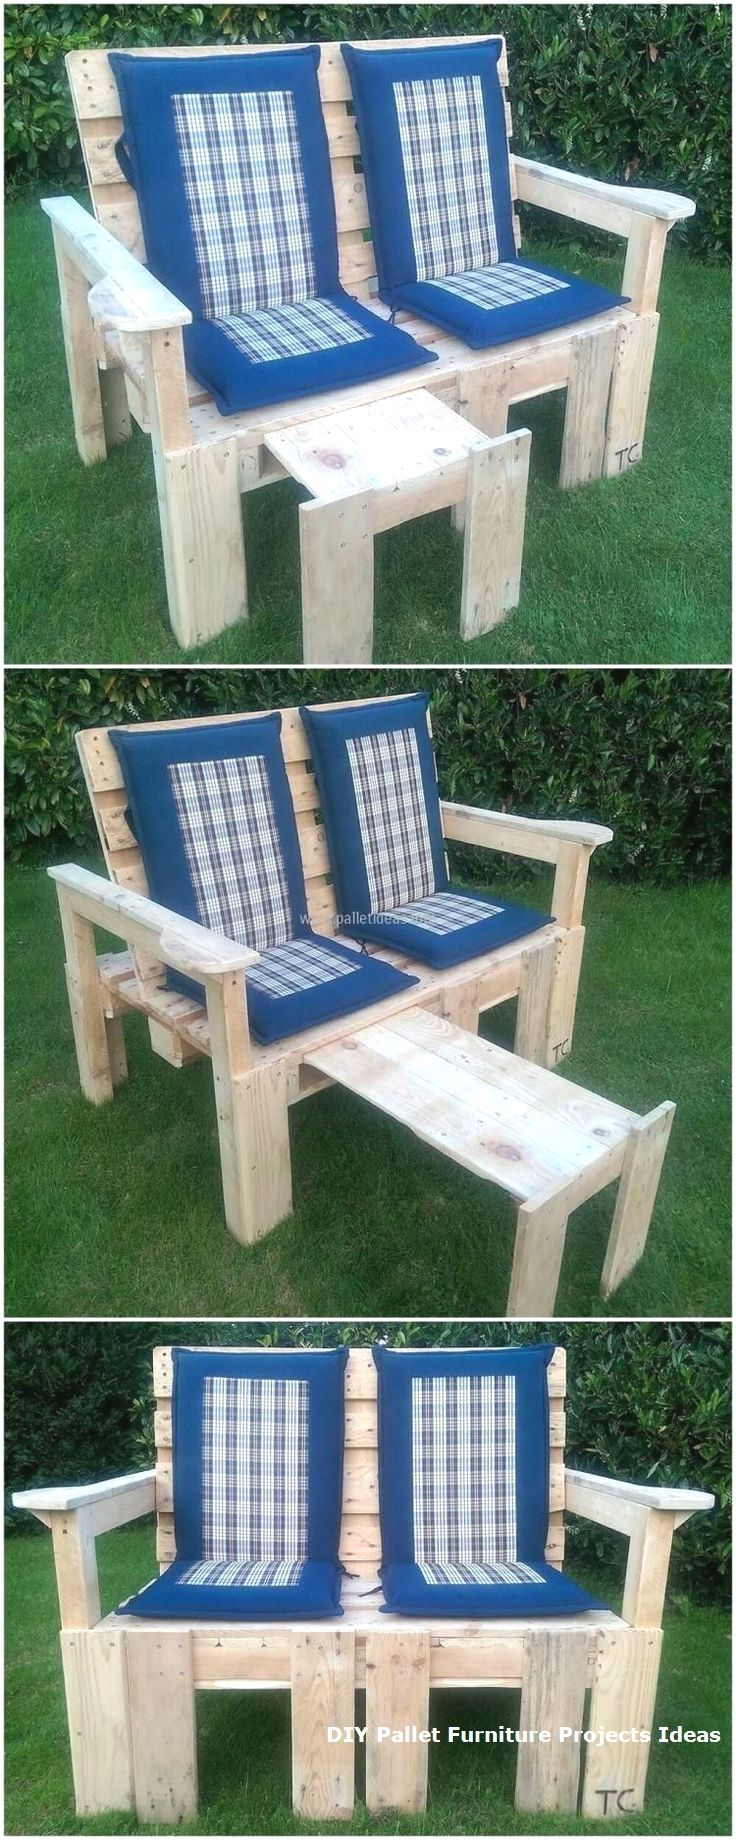 Do It Yourself Furniture Ideas: 15 Incredible Do It Yourself Pallet Ideas: 2. Pallet Rake